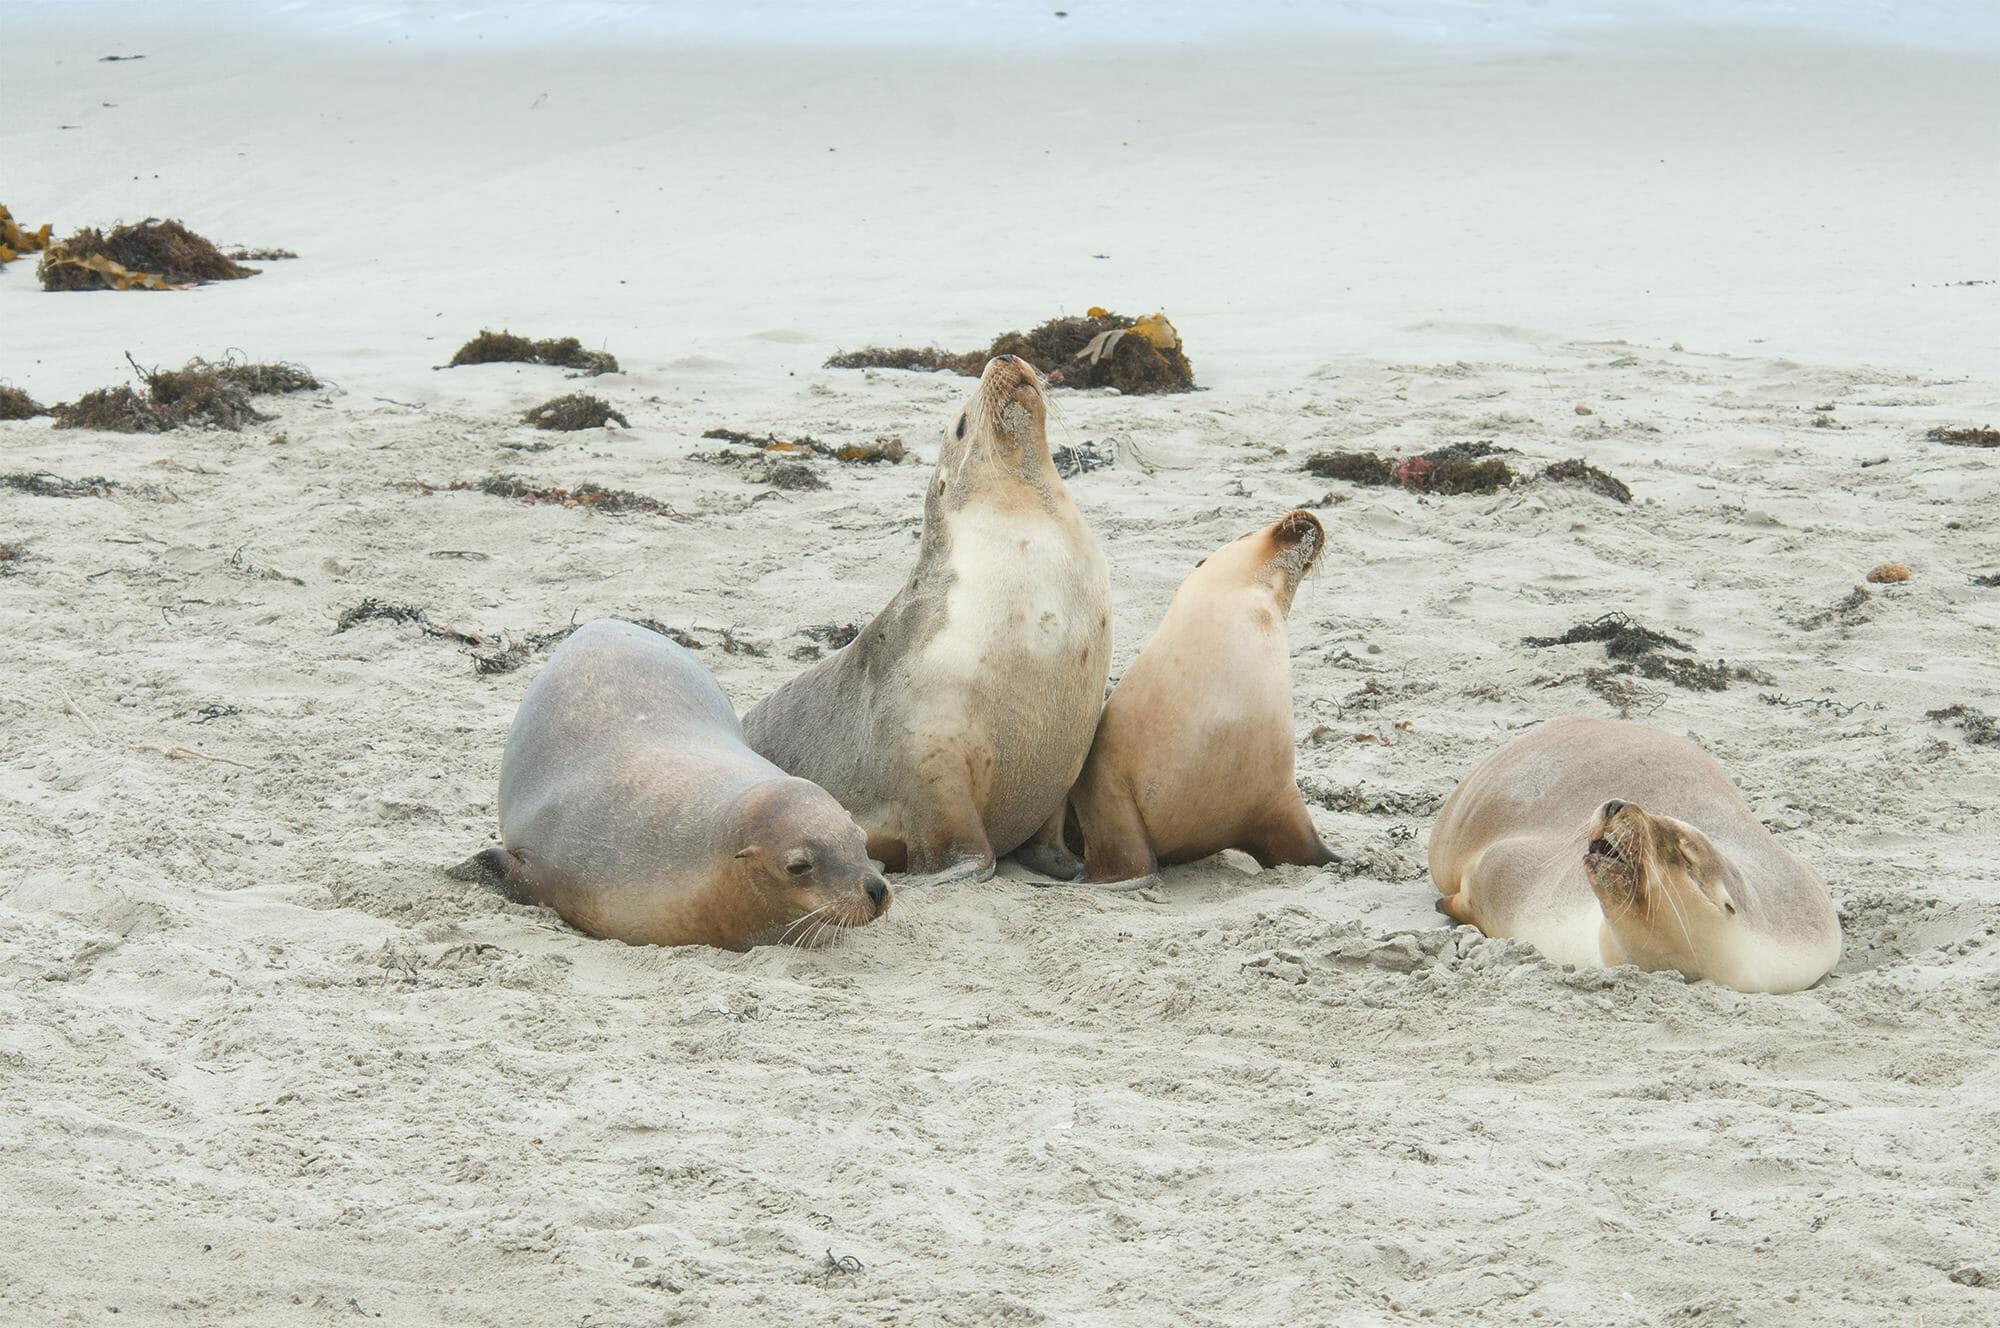 Wildlife watching on Kangaroo Island - Australian sea lion